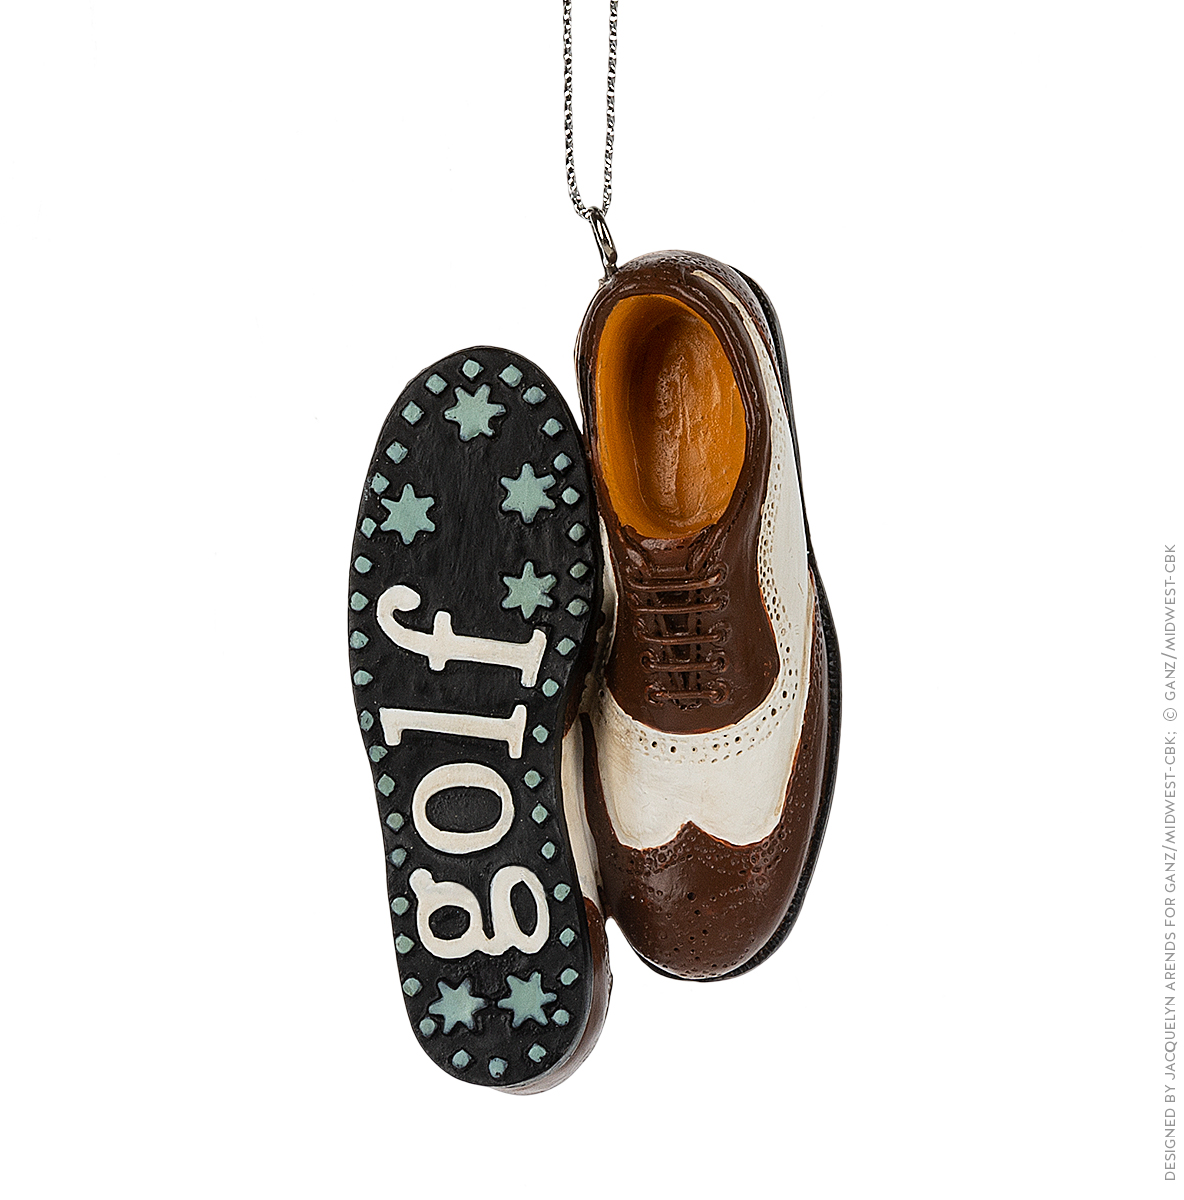 Specialty Ornaments Golf Shoes ornament by Jacquelyn Arends; © Ganz/Midwest-CBK 2019